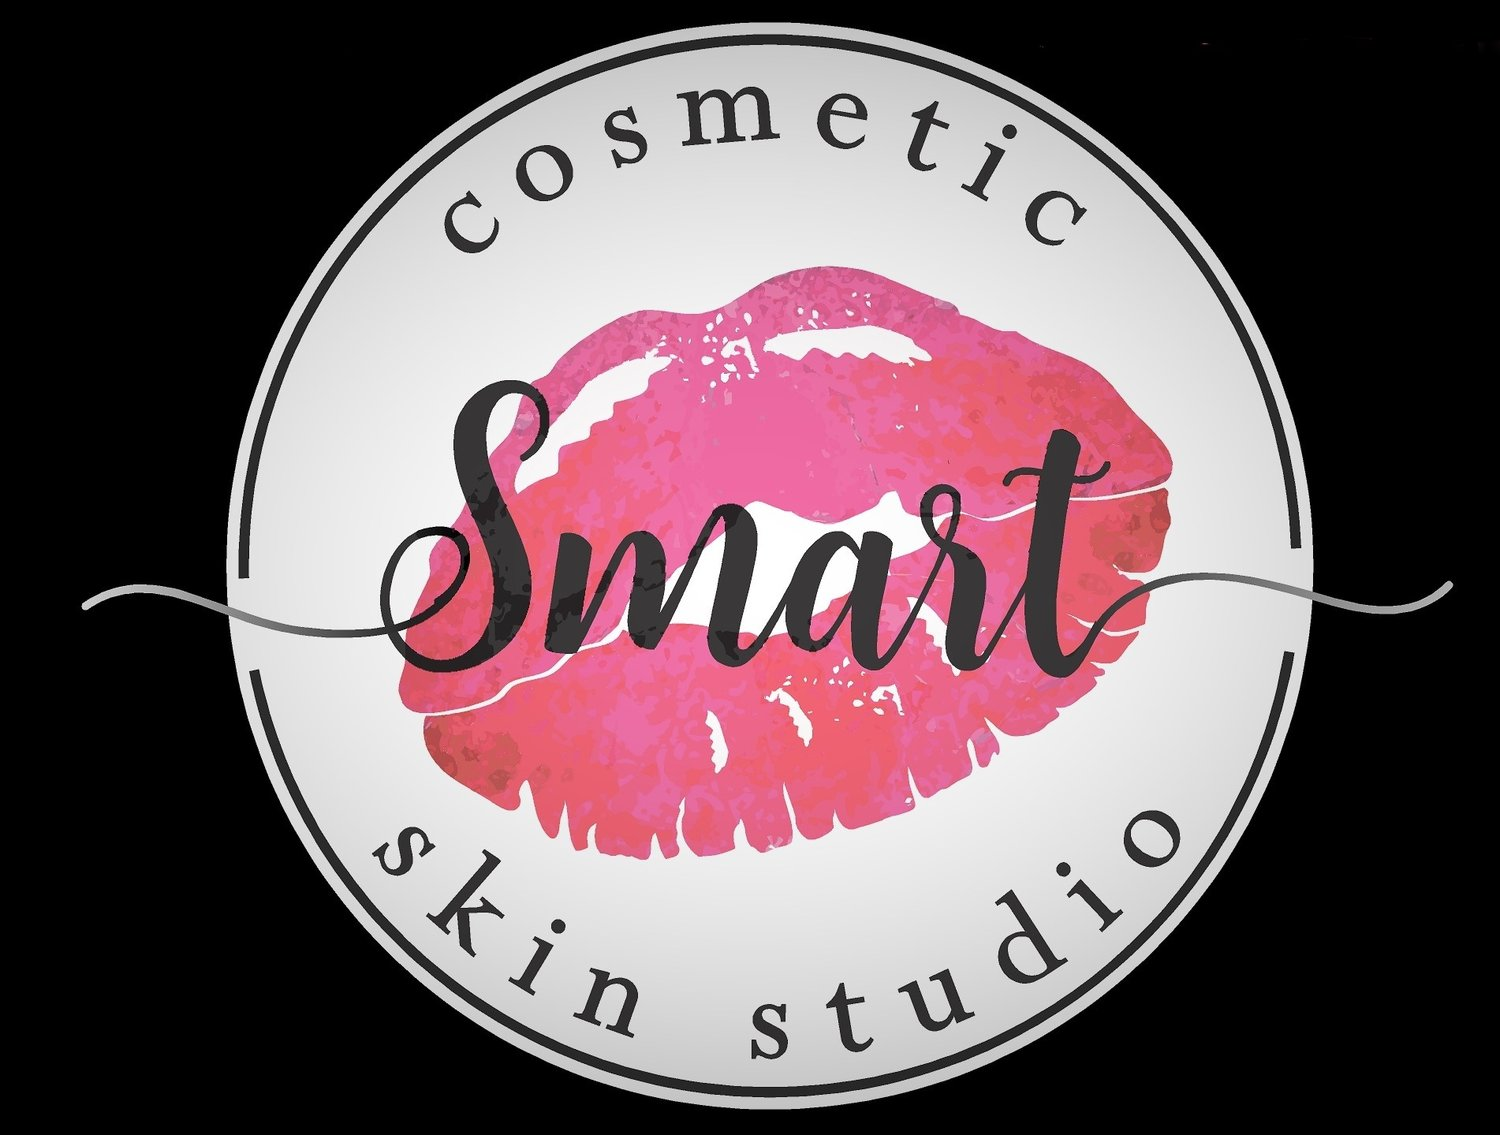 Smart Cosmetic and Skin Studio